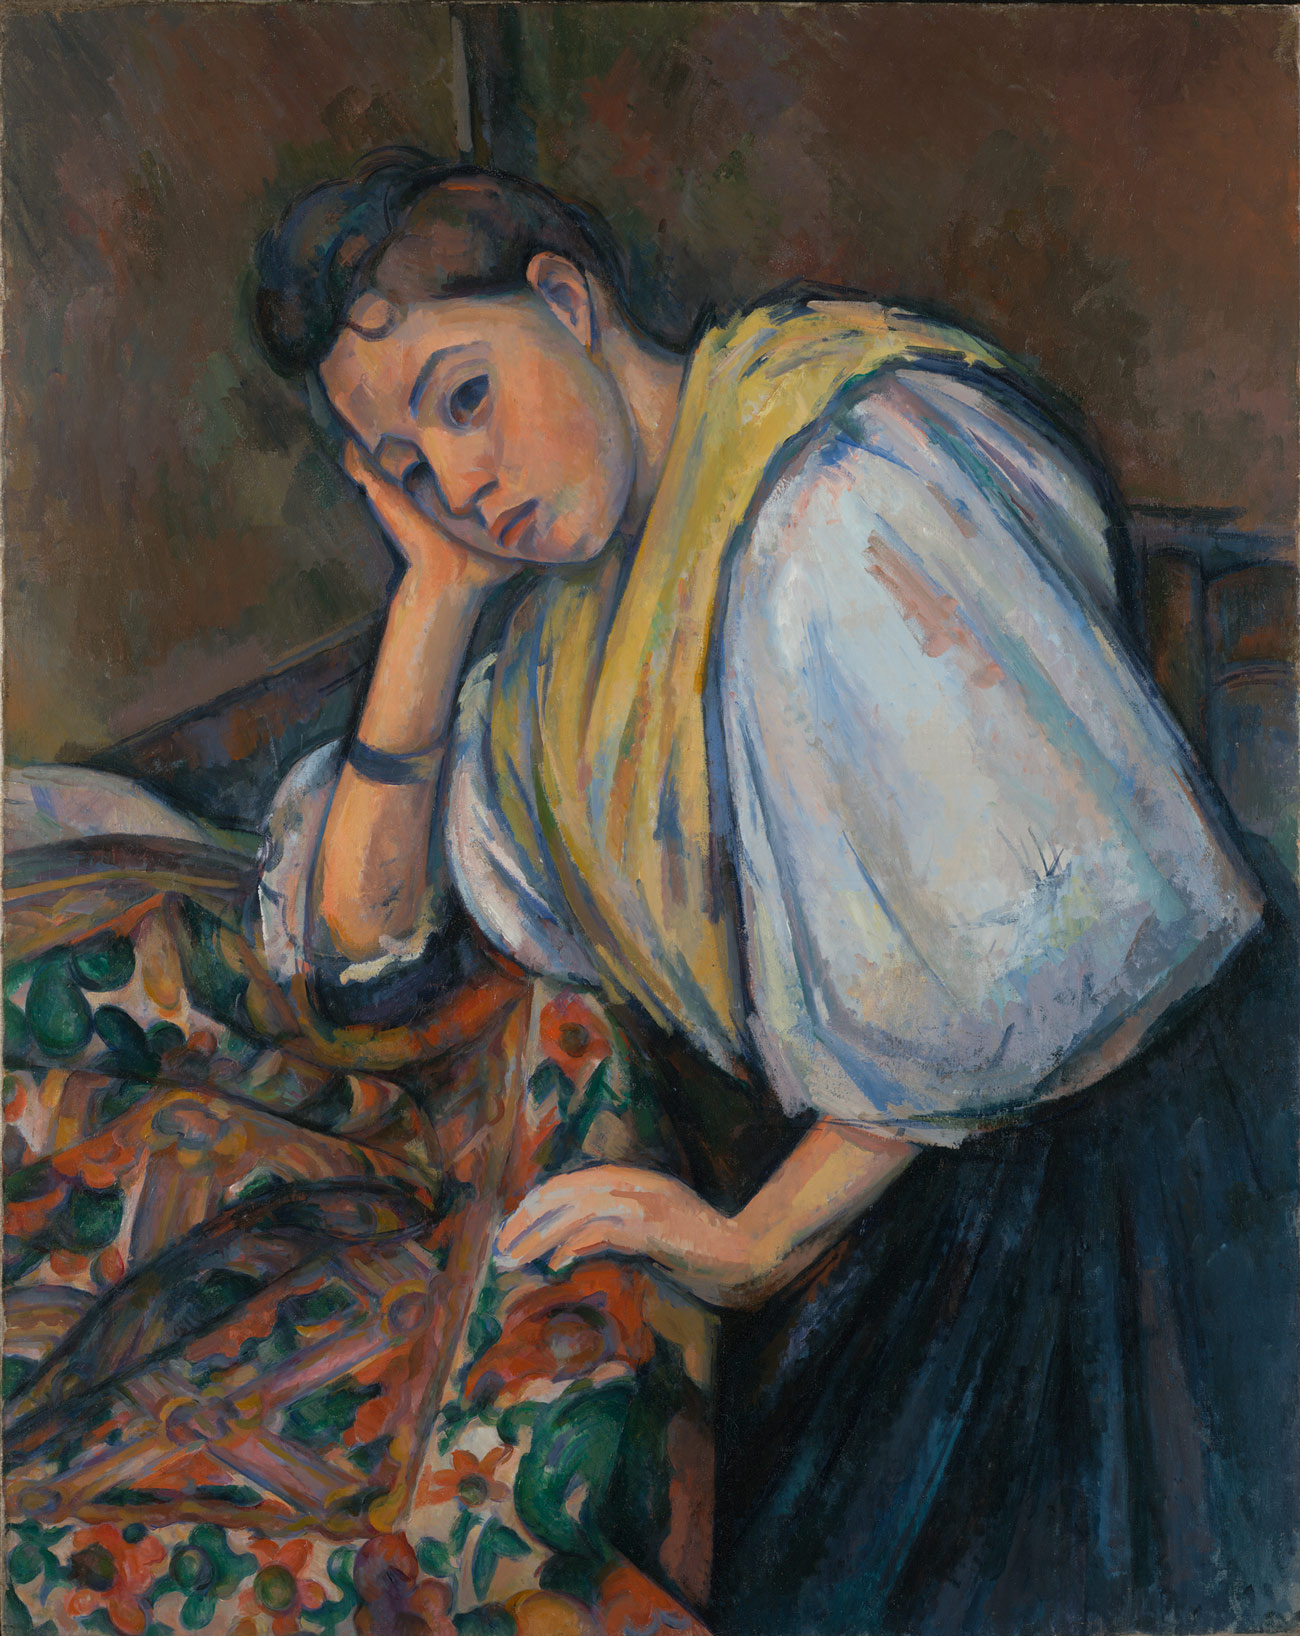 A painting in bright colors and broad strokes of a woman slumped, over table covered with floral fabric, looking thoughtfully into the distance.